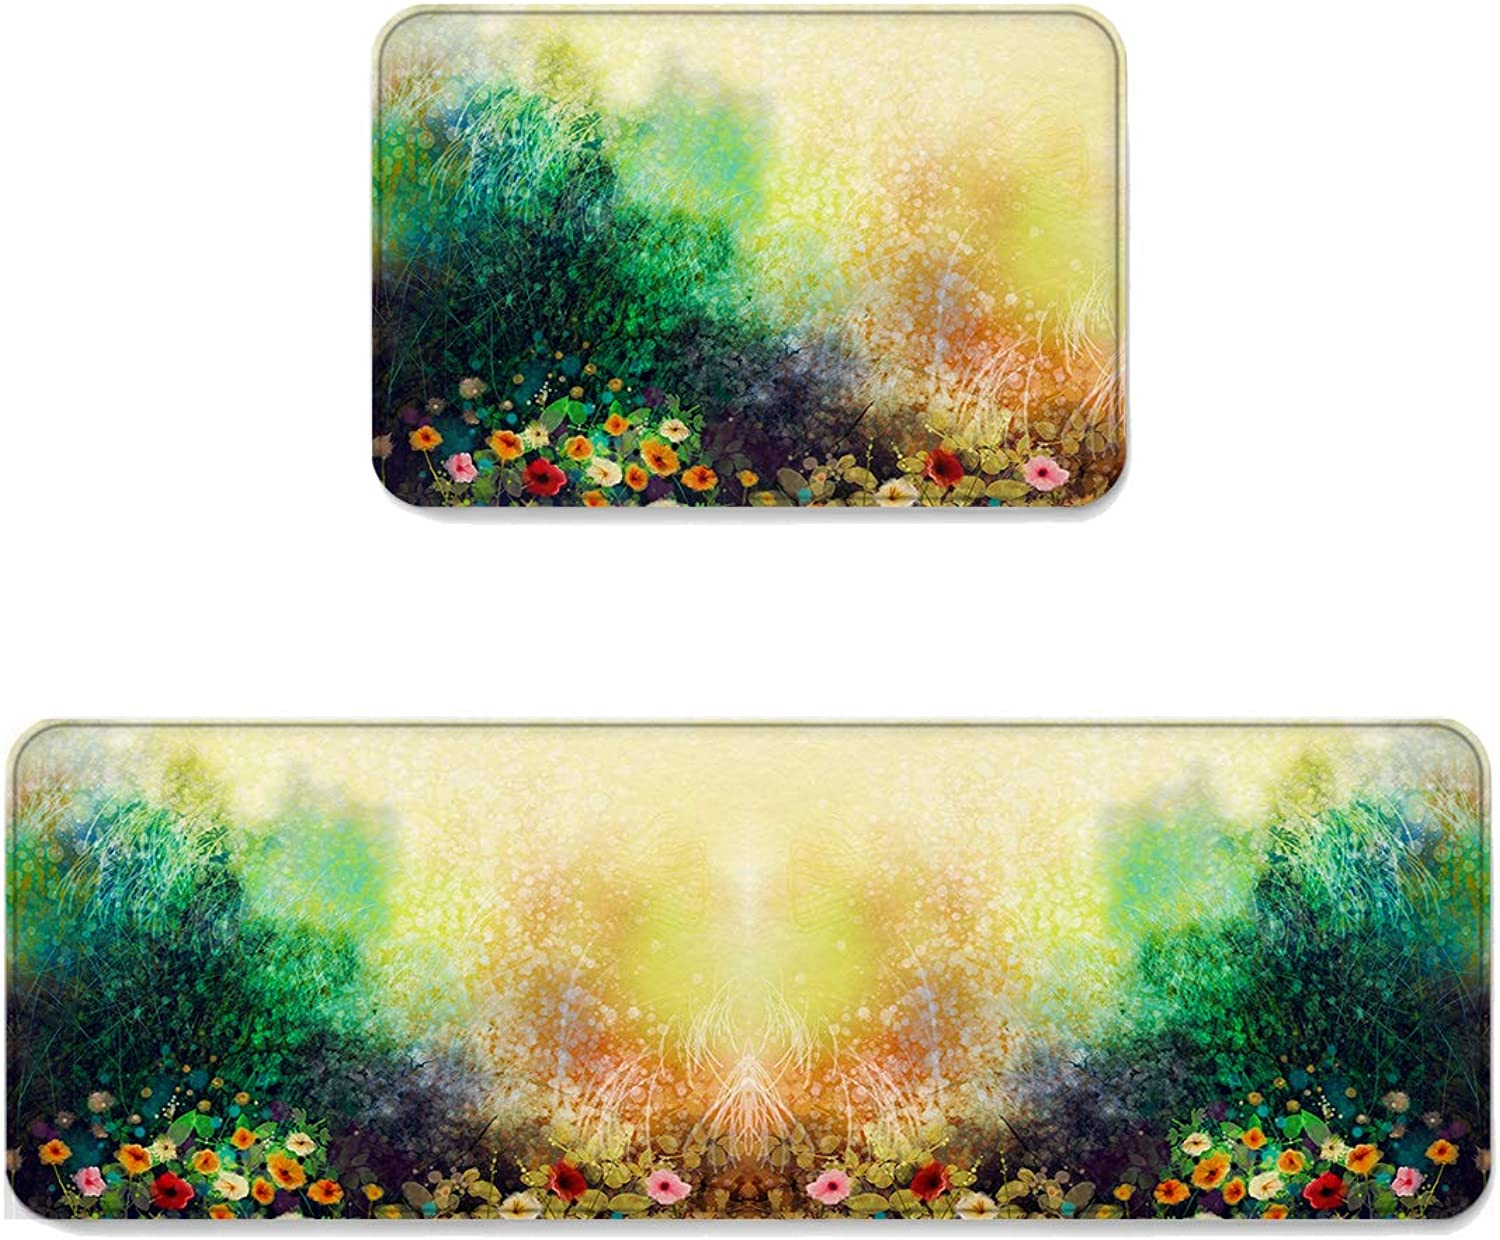 Fantasy Star Kitchen Rug Sets 2 Piece Floor Mats Non-Slip Rubber Backing Area Rugs Sparkling Flowers and Grass Doormat Washable Carpet Inside Door Mat Pad Sets (23.6  x 35.4 +23.6  x 70.9 )